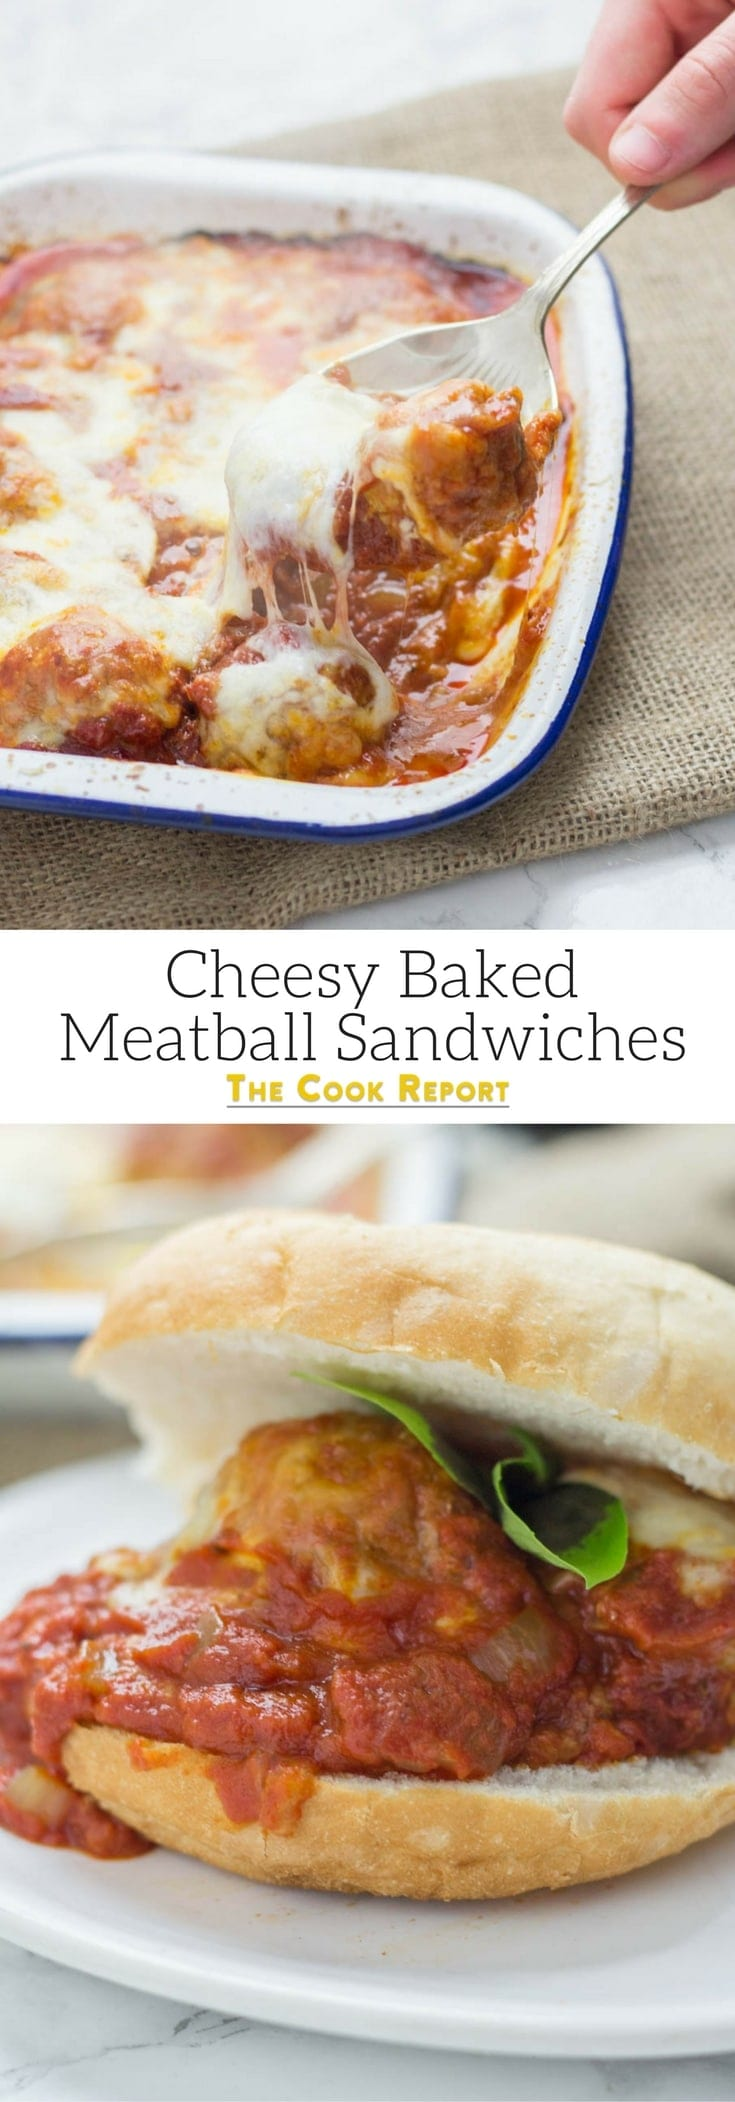 These cheesy baked meatball sandwiches are the perfect thing to feed a crowd! Serve for a party or just as a weeknight dinner the whole family will love.